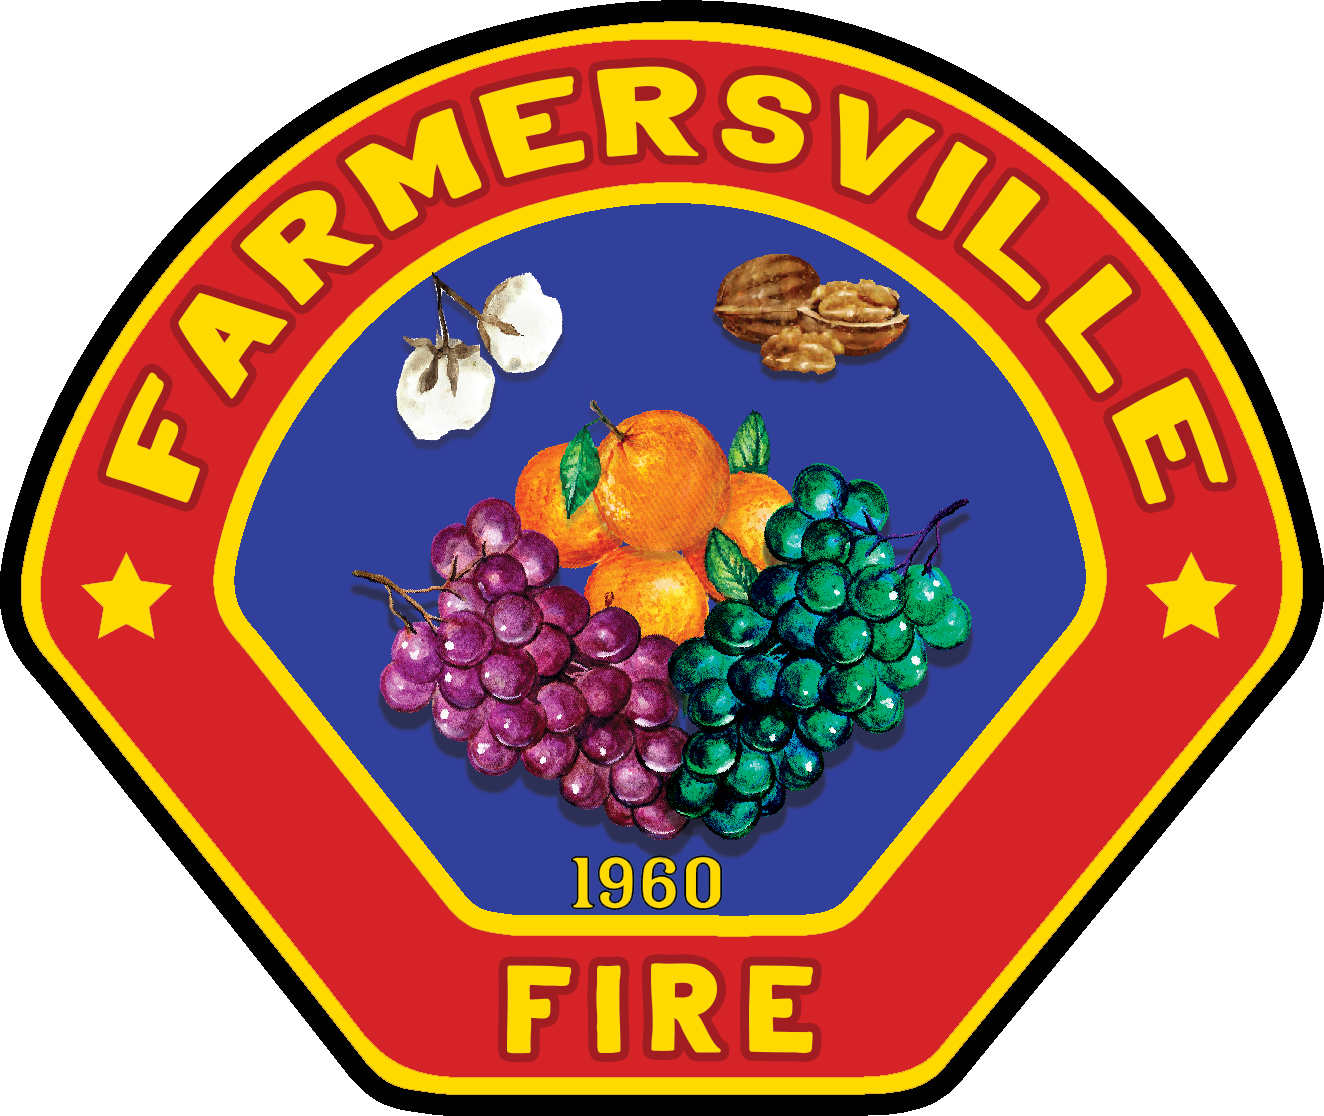 Farmersville Fire Patch